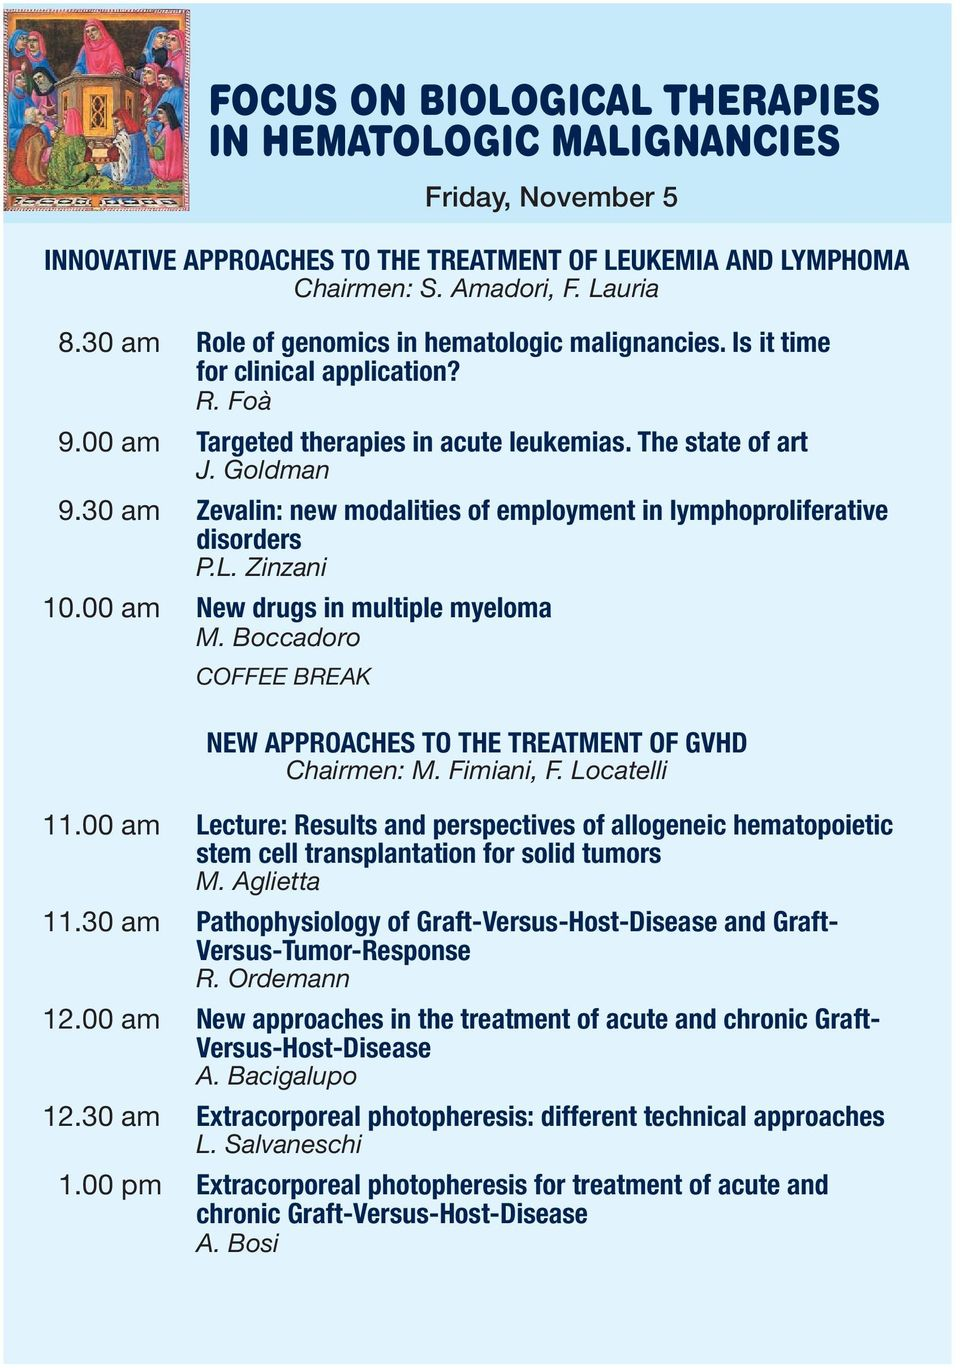 00 am New drugs in multiple myeloma M. Boccadoro COFFEE BREAK Friday, November 5 NEW APPROACHES TO THE TREATMENT OF GVHD Chairmen: M. Fimiani, F. Locatelli 11.